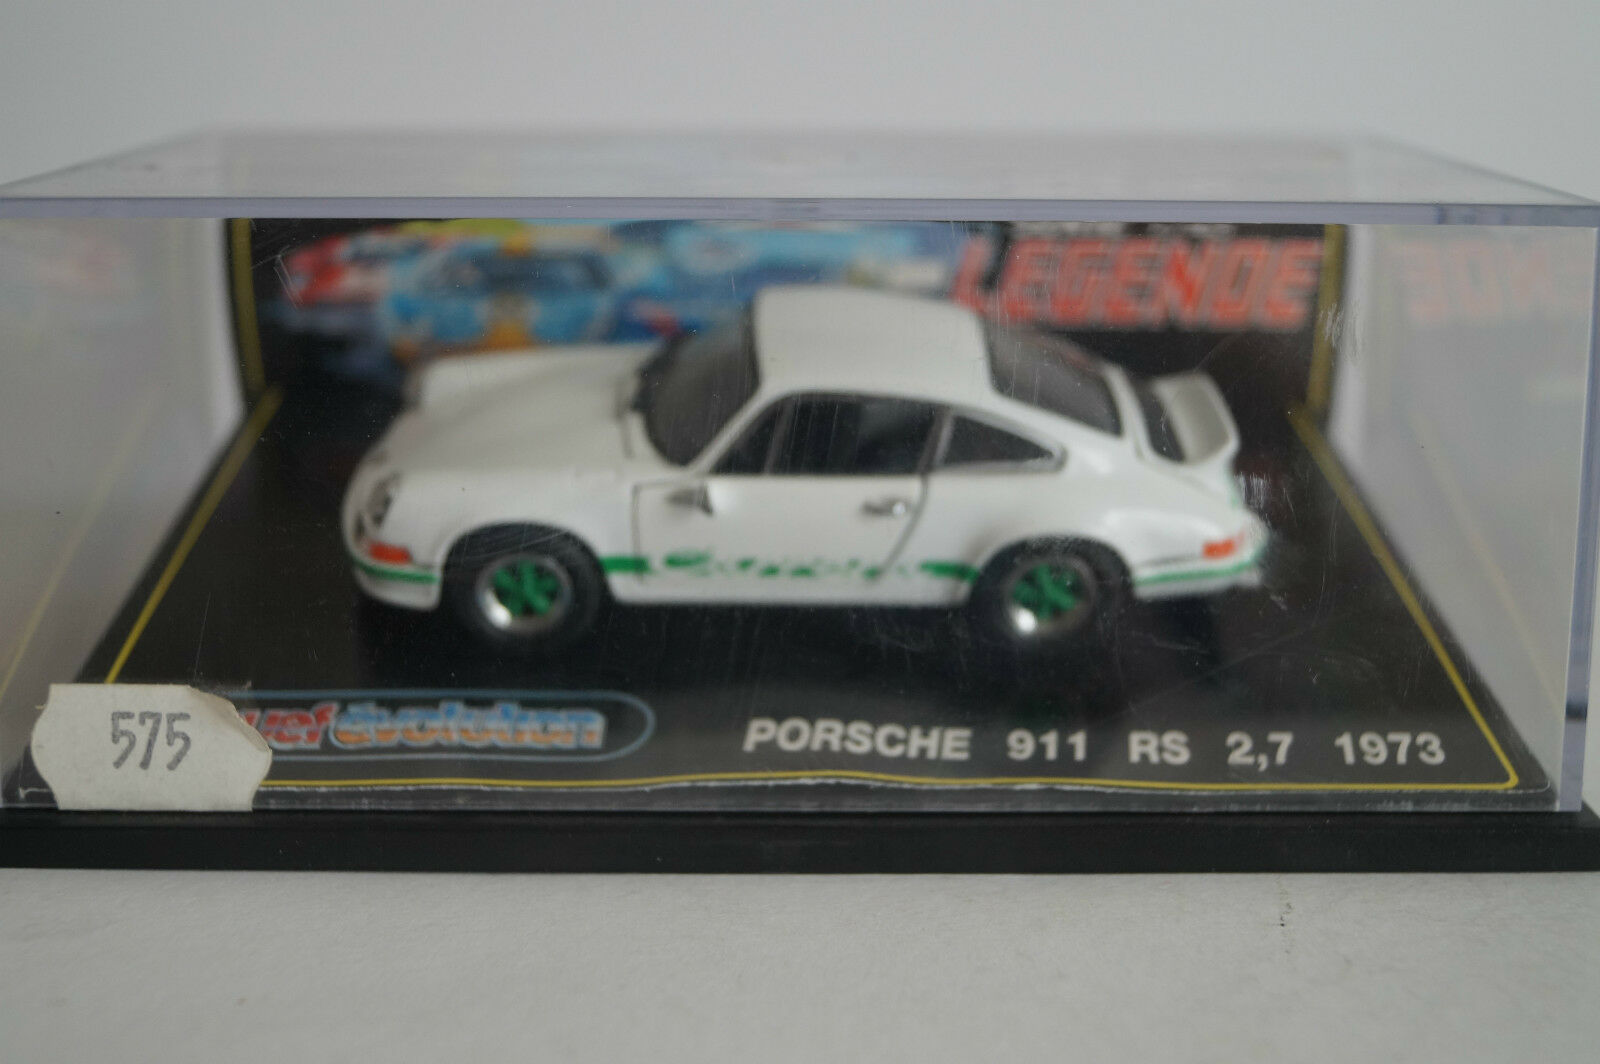 Jouef Evolution Modelauto 1 43 Porsche 911 RS 2,7 1973